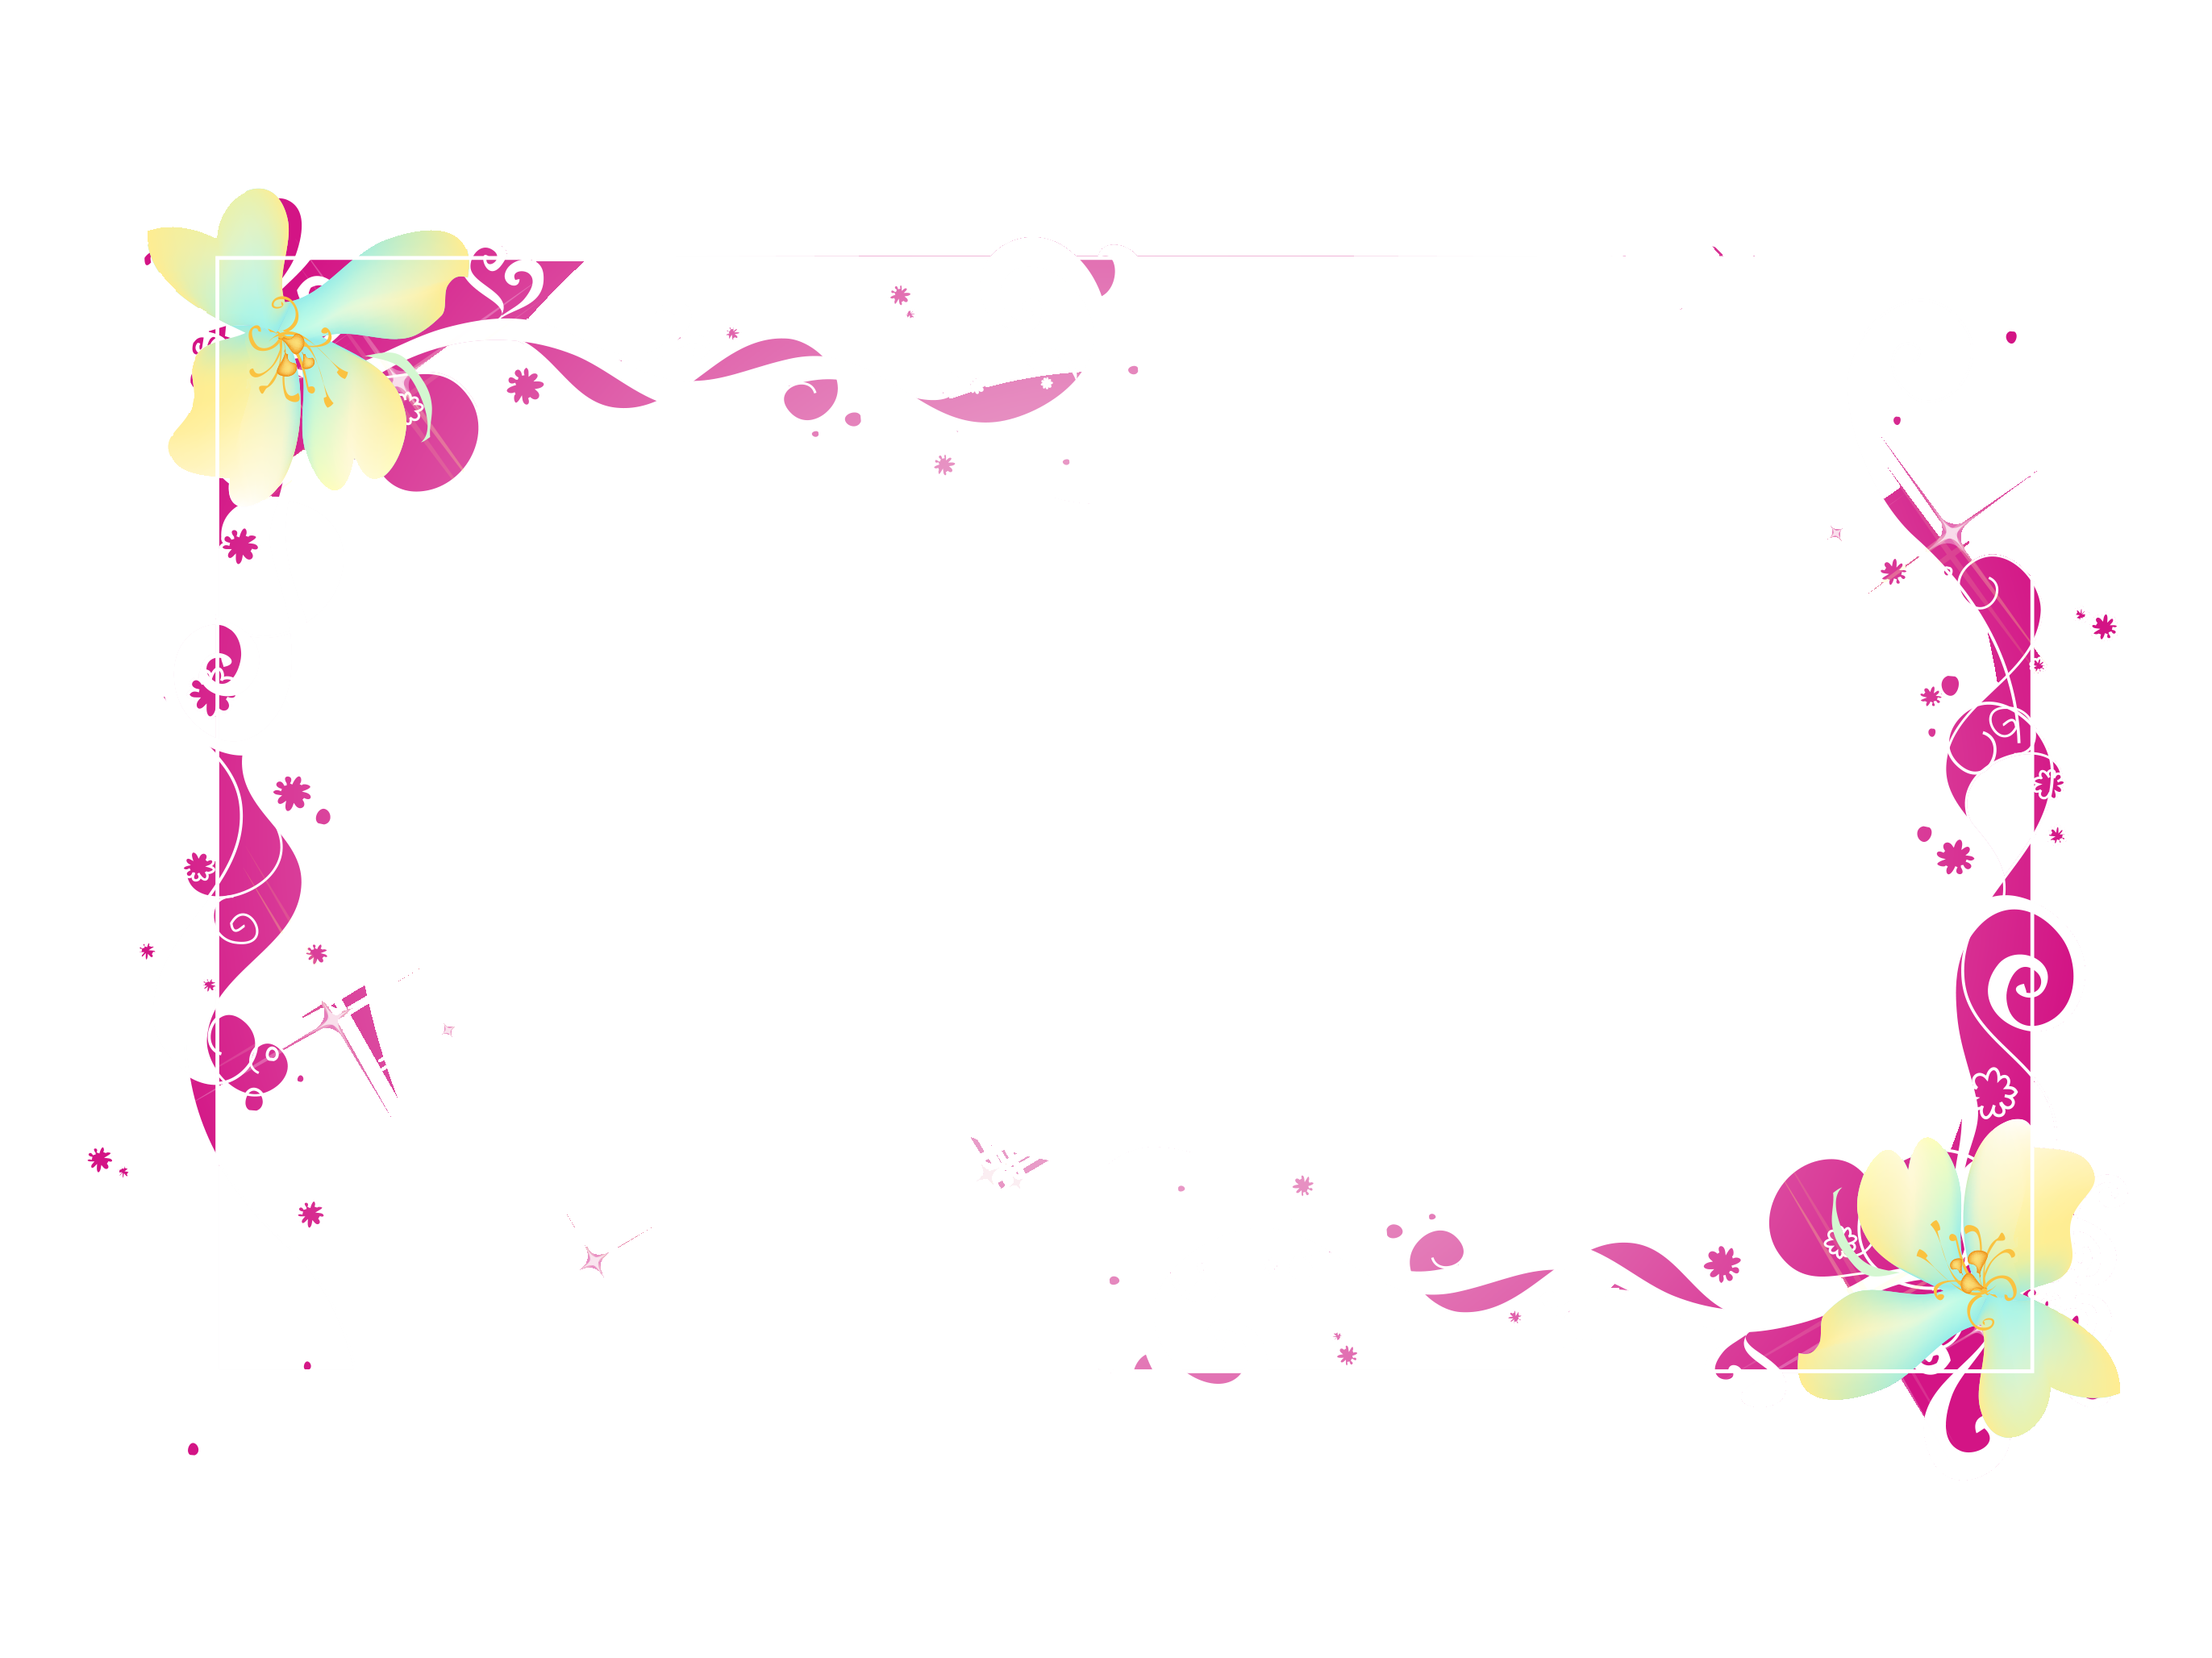 Graphic design symmetry symmetrical. Clipart hearts calligraphy